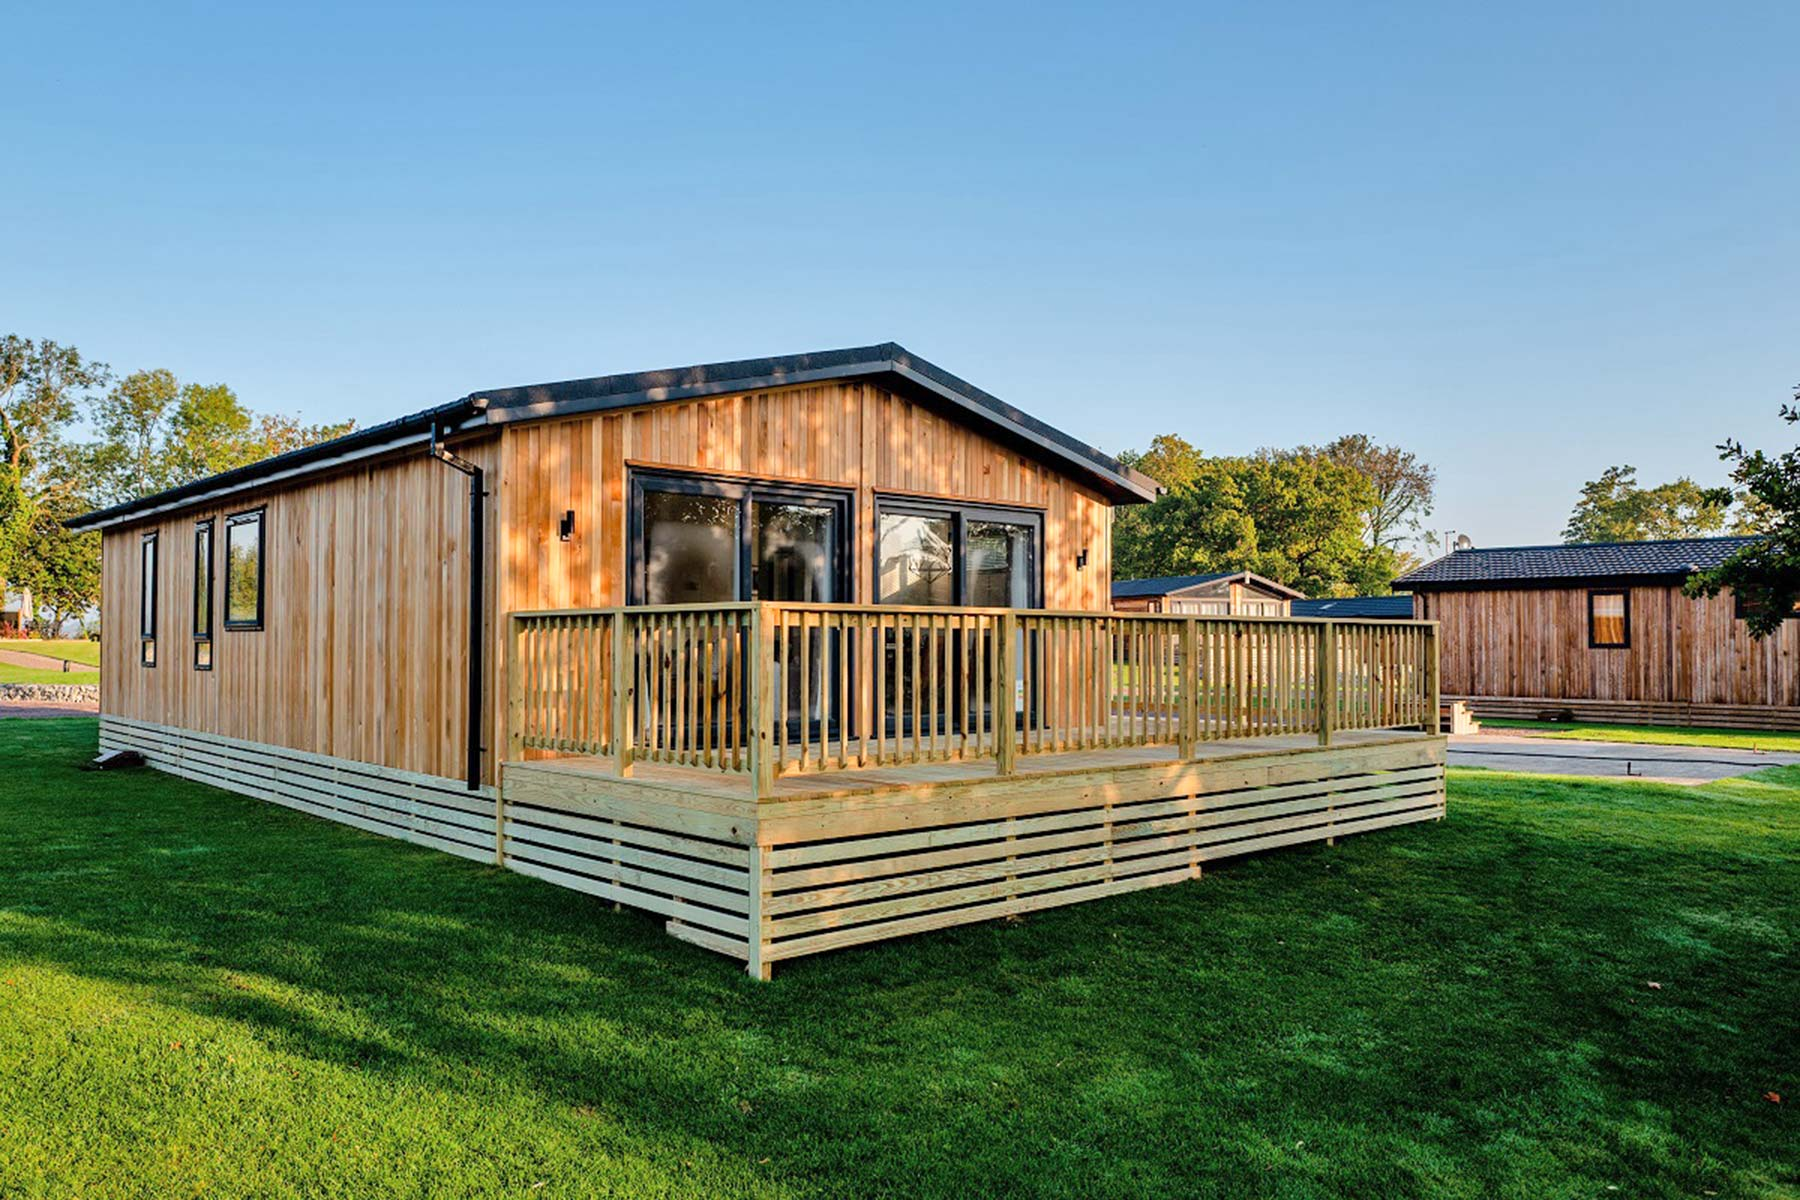 Cheap large holiday homes | Best family holiday parks UK | Caravan holiday Wales